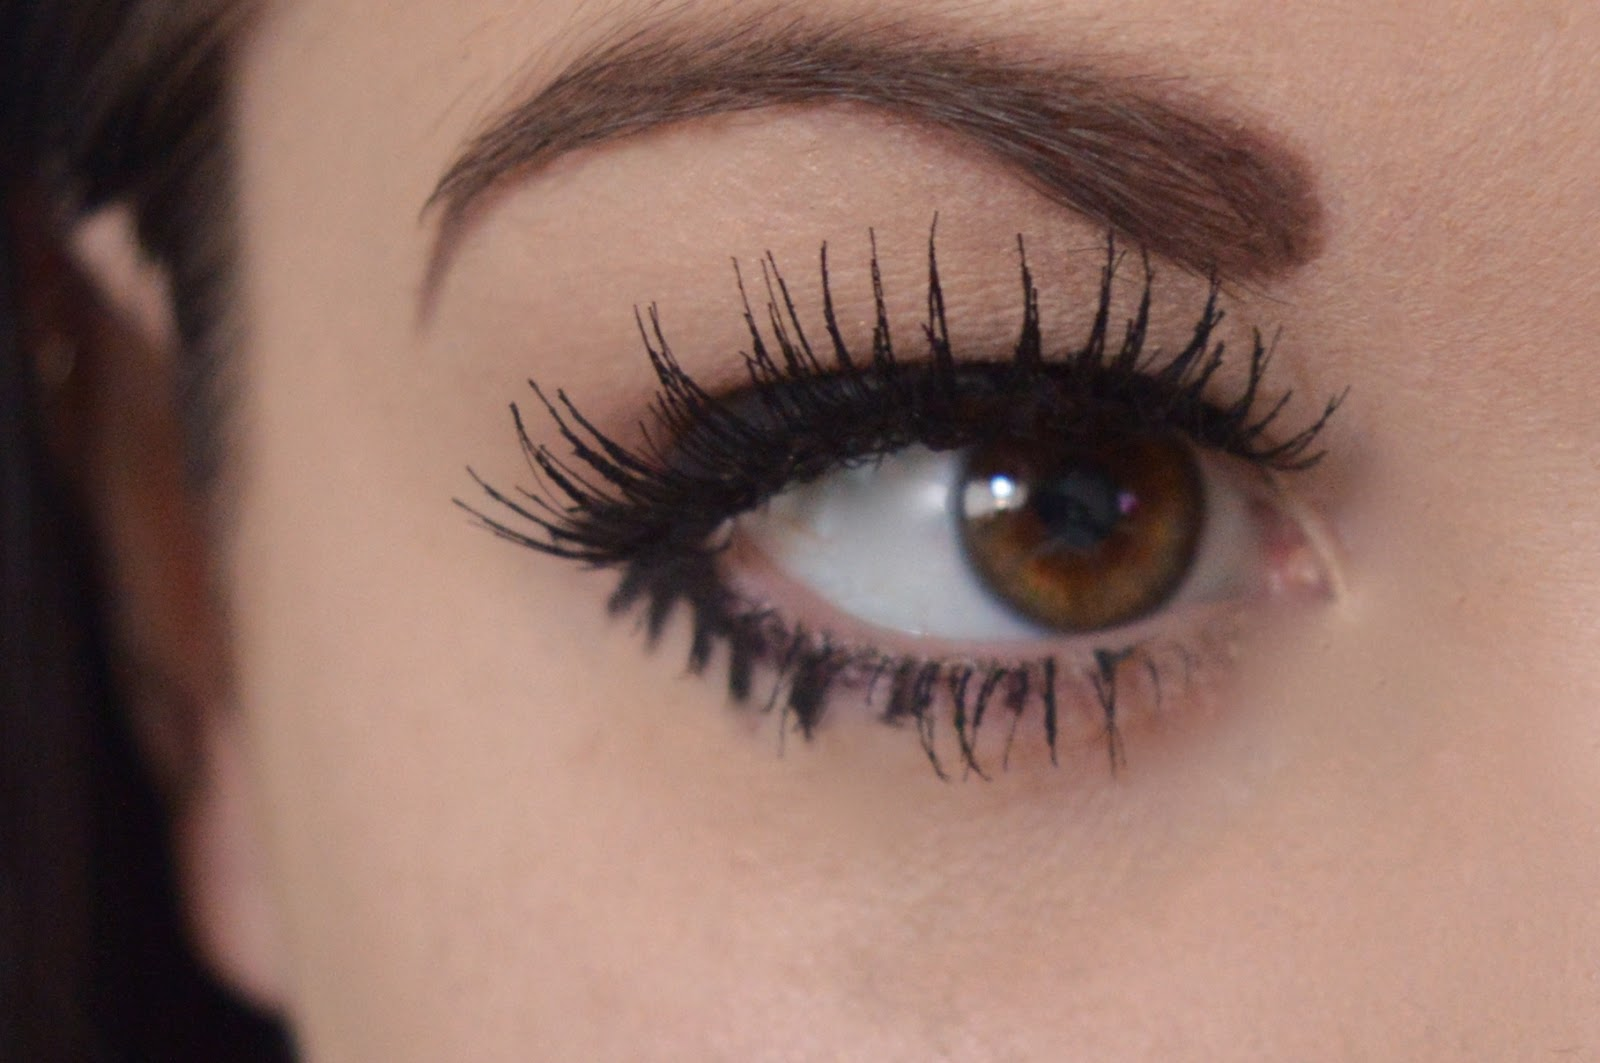 Eylure 141 eyelash review